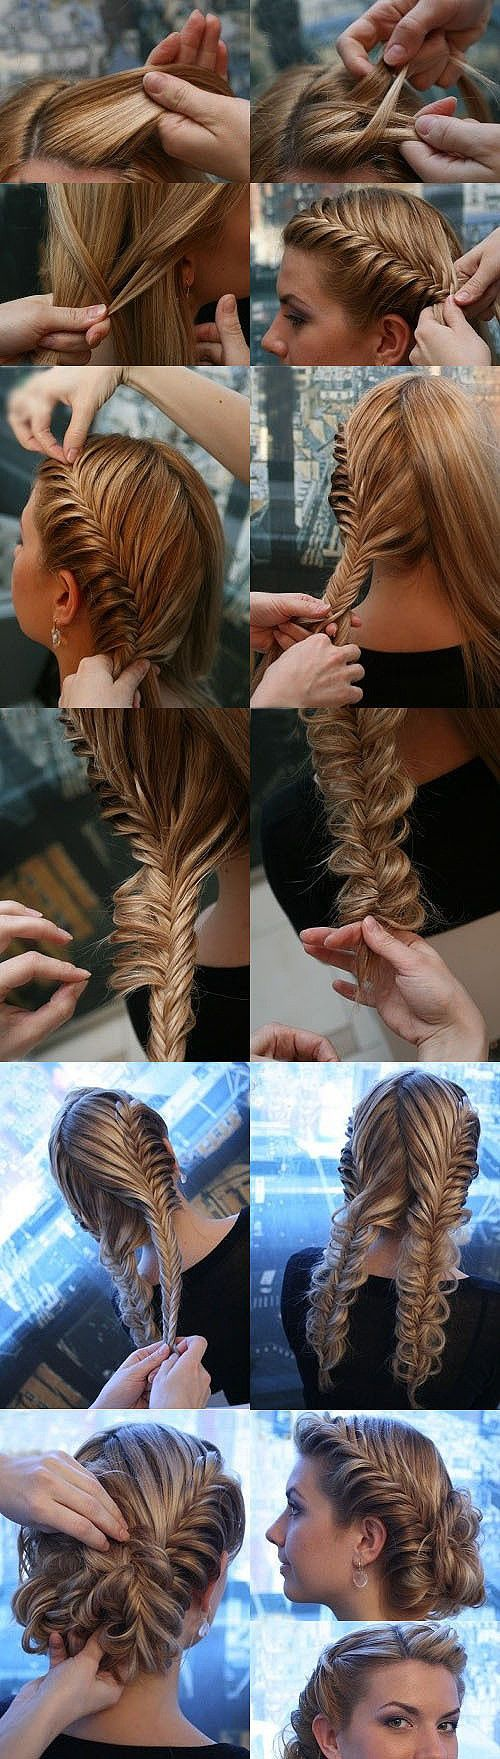 20 Clever And Interesting Tutorials For Your Hairstyle - Fashion Diva Design